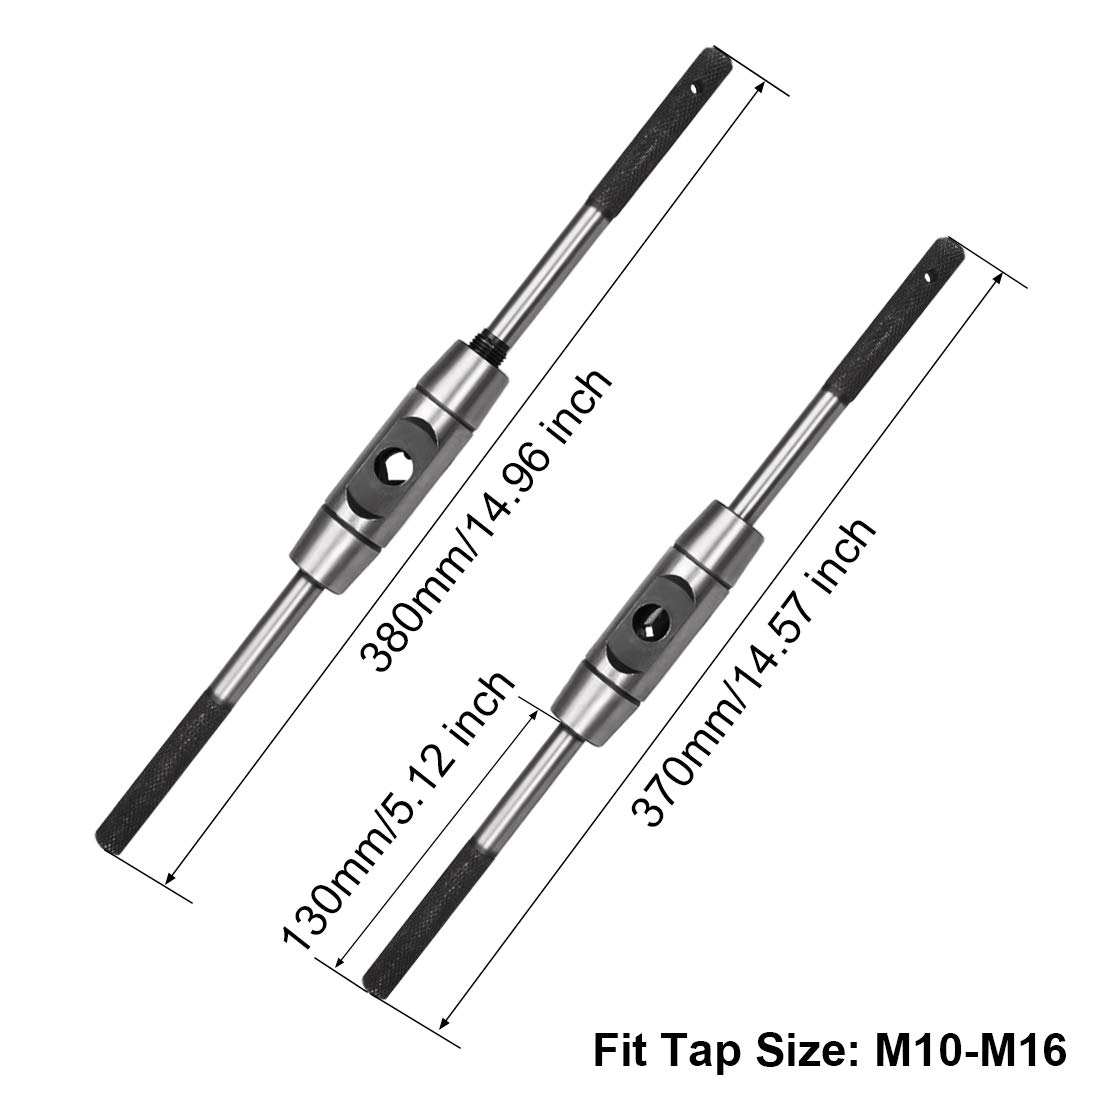 uxcell Tap Wrench Handle M6-M20 Metric Adjustable Bar Taps Holder Straight Tapping Wrench 1//4-3//4